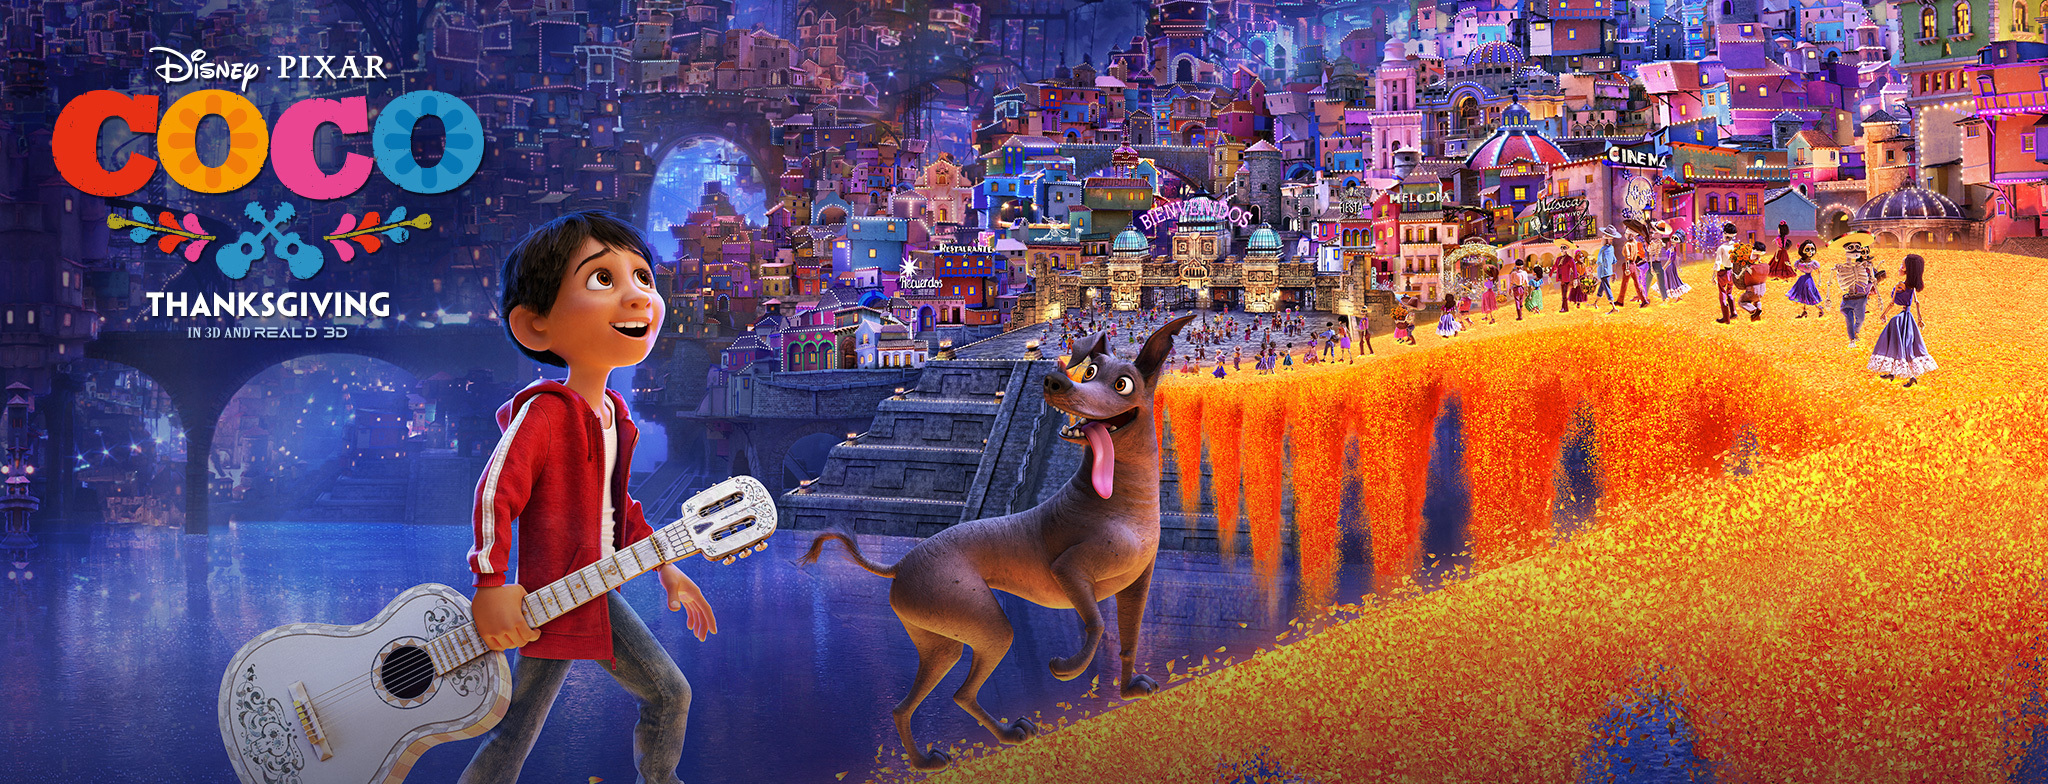 Coco Review The Best Animated Film Of 2017